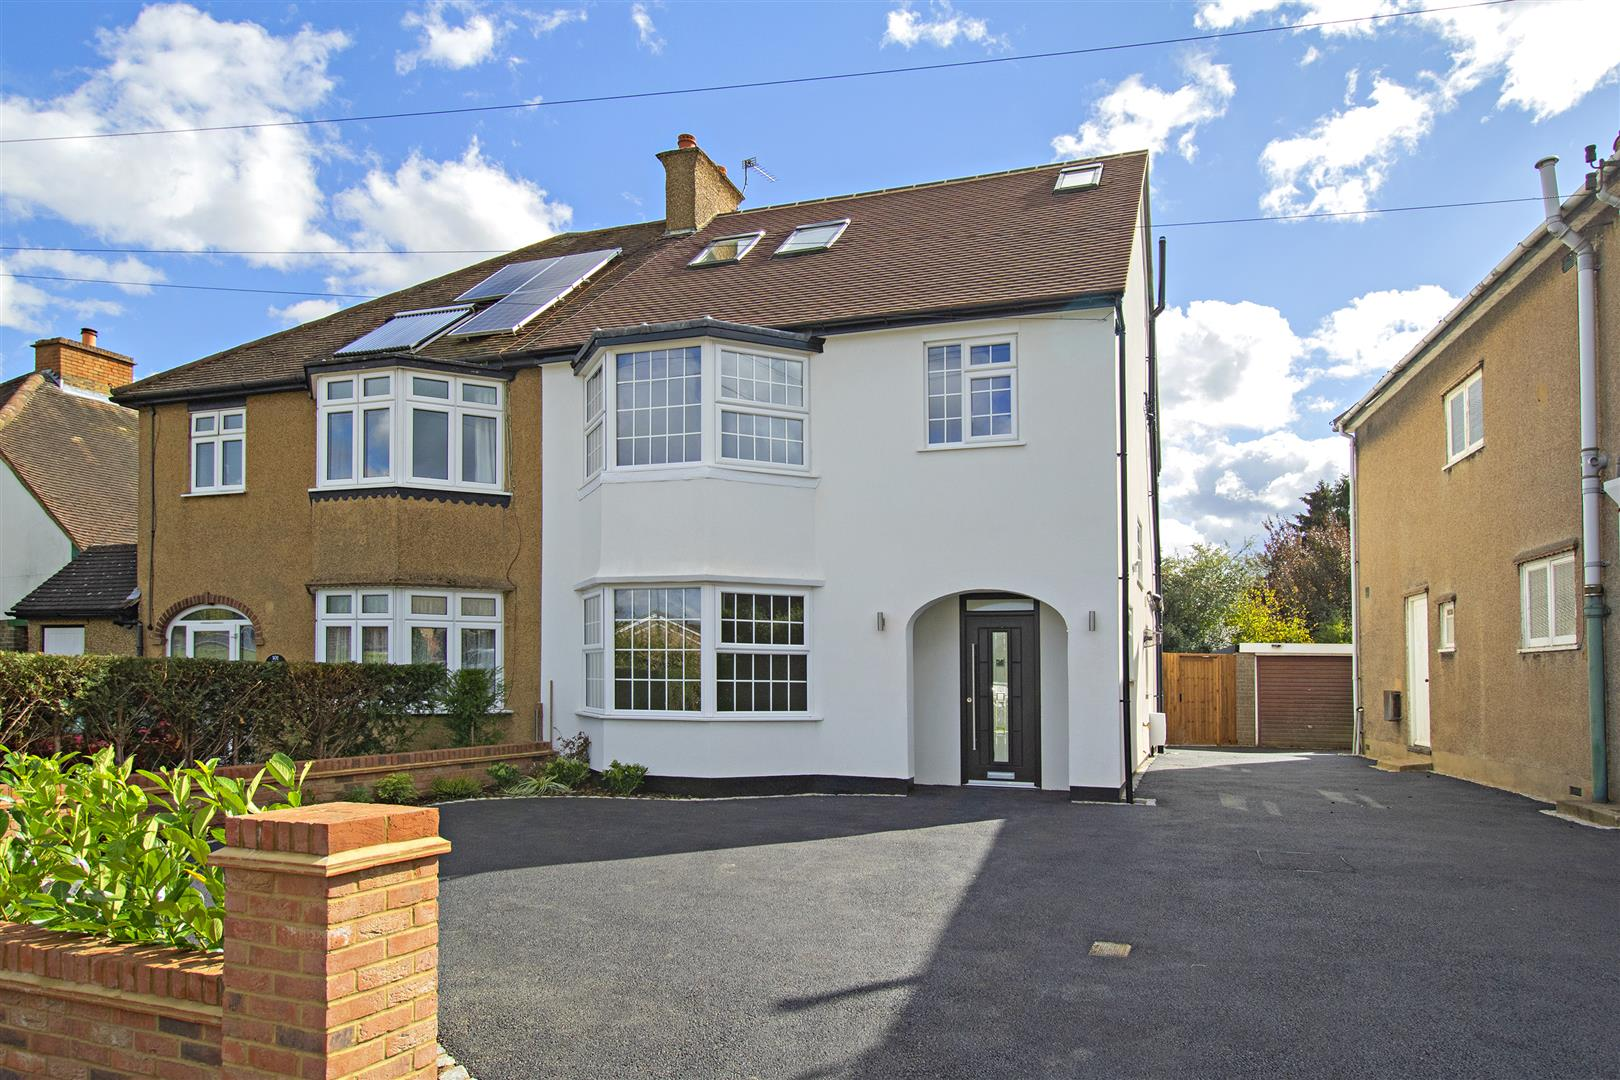 4 bed to rent in Loom Lane, Radlett - Property Image 1